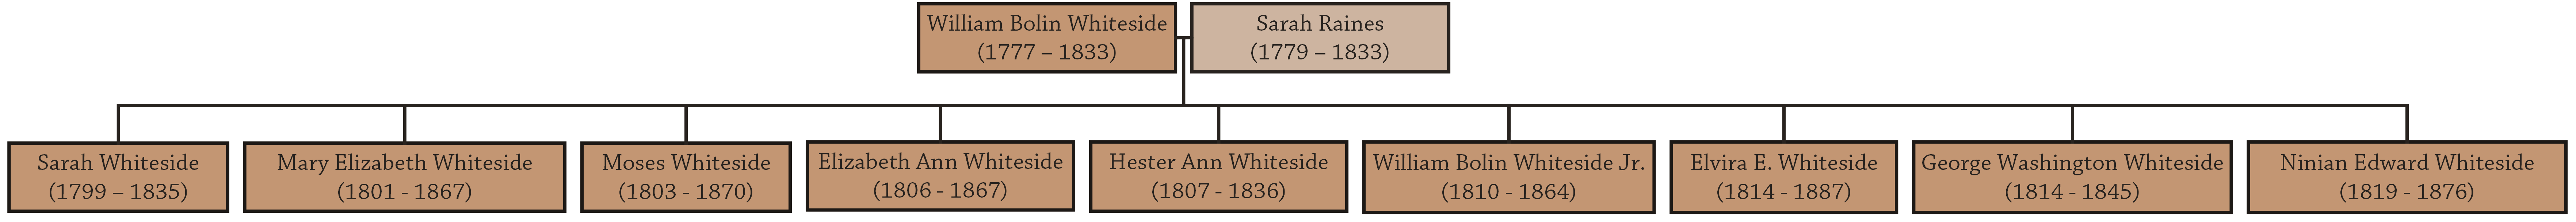 Family Tree of the third generation of Whitesides